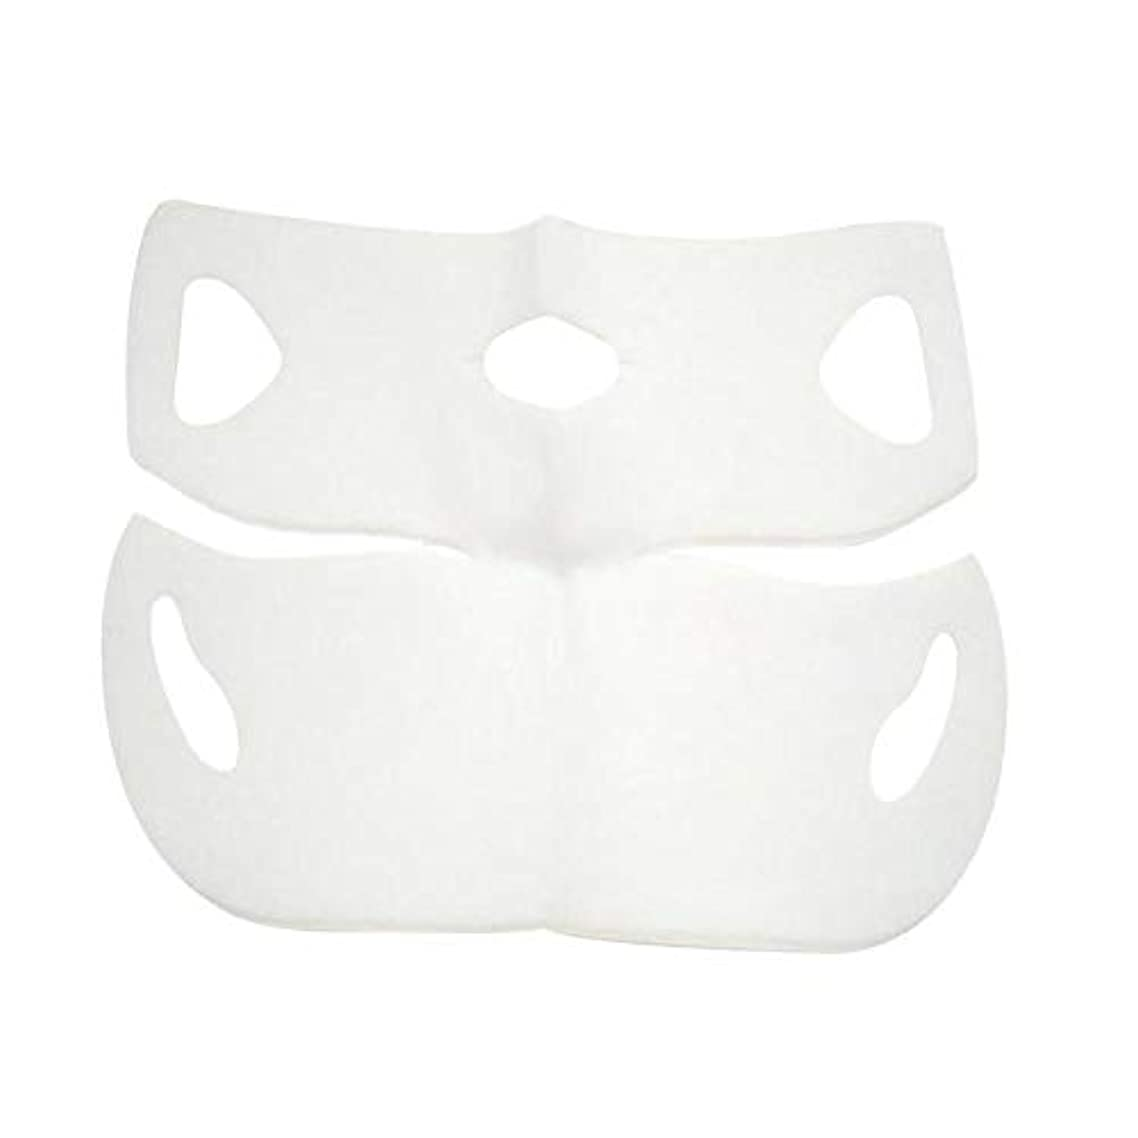 SODIAL V Shape Lifting Facial Mask Face Slim Chin Check Neck Lift Peel-Off Mask V Shaper Facial Slimming Bandage Mask Skin Care Double